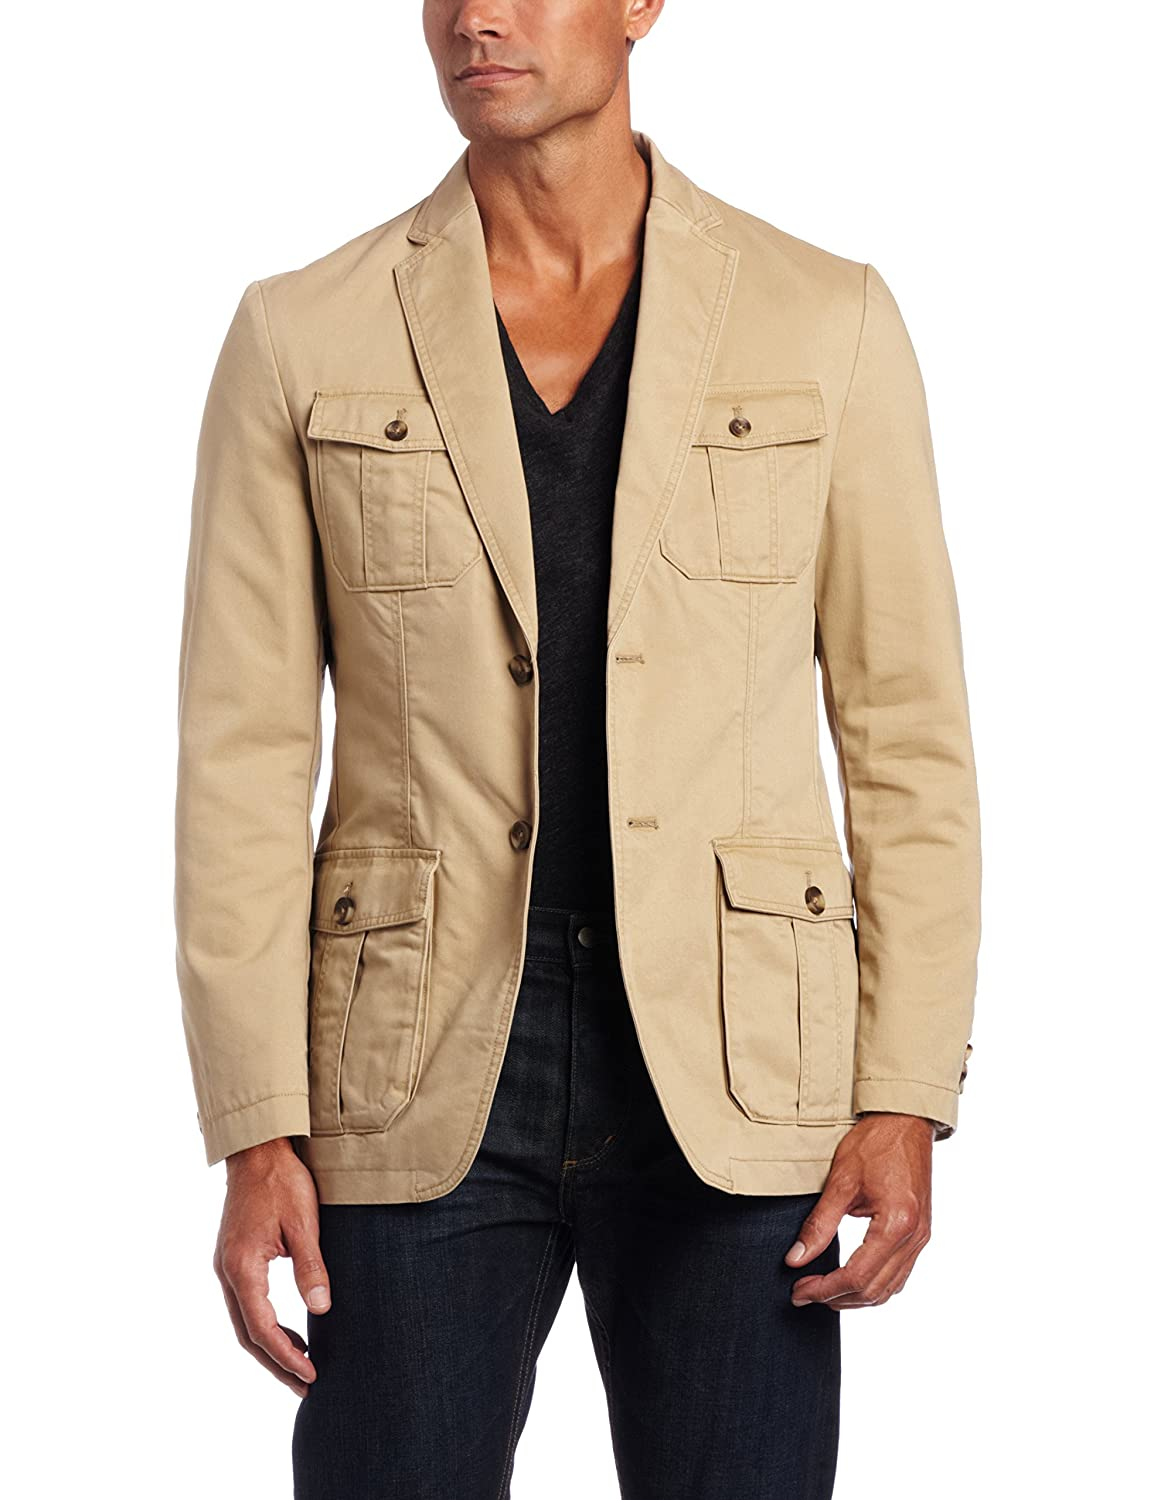 Haggar Men's LK Life Khaki Two-Button Oxford Jacket Khaki 48 R Haggar Men's Tailored HJ00089